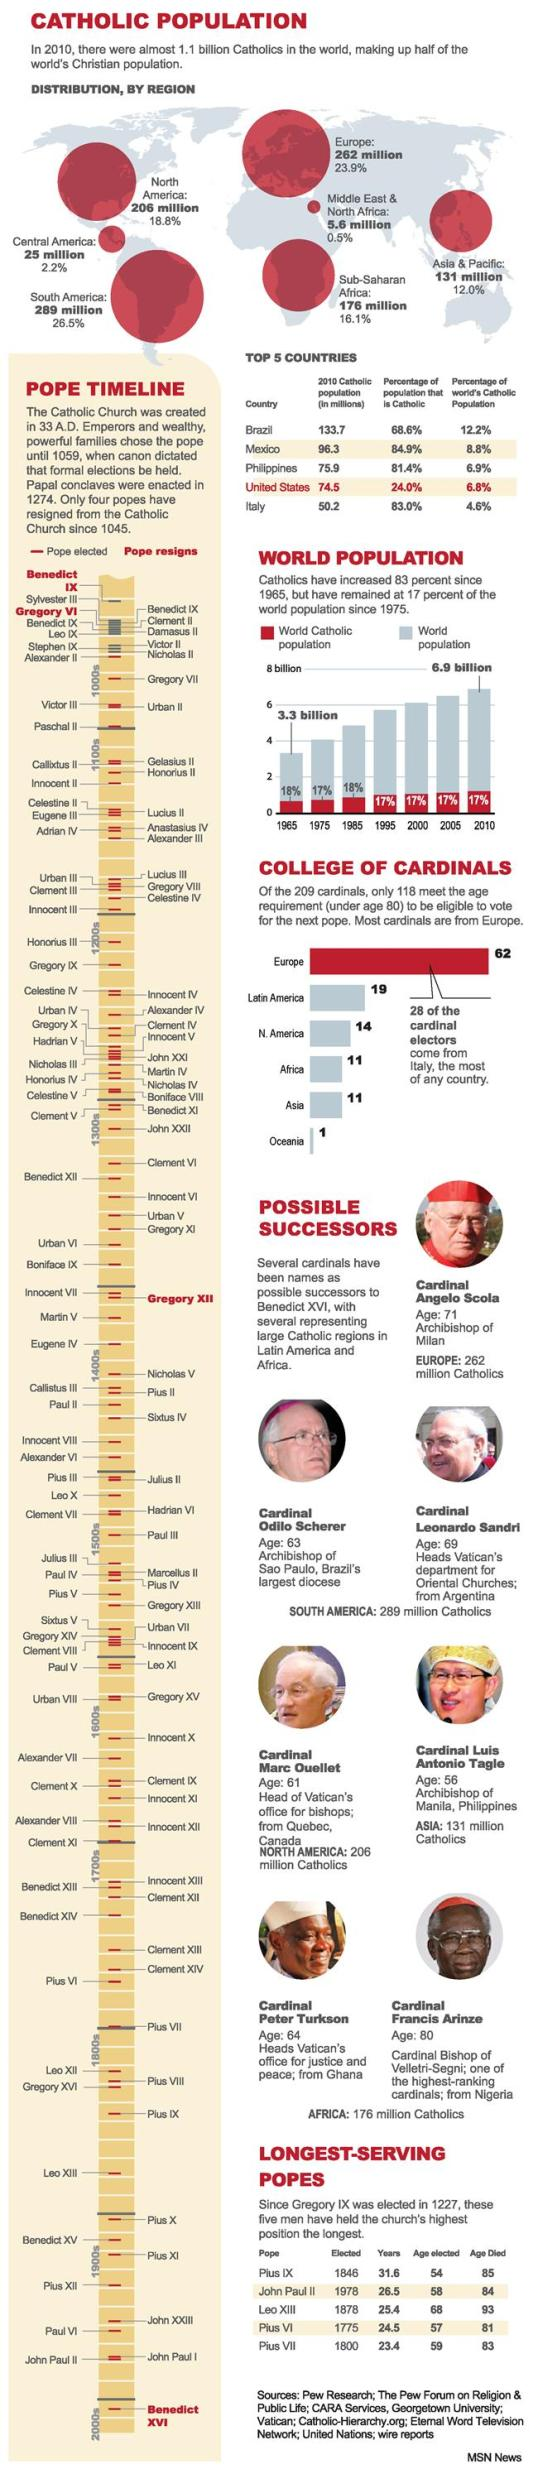 Where Will the Next Pope Come From Infographic Catholic